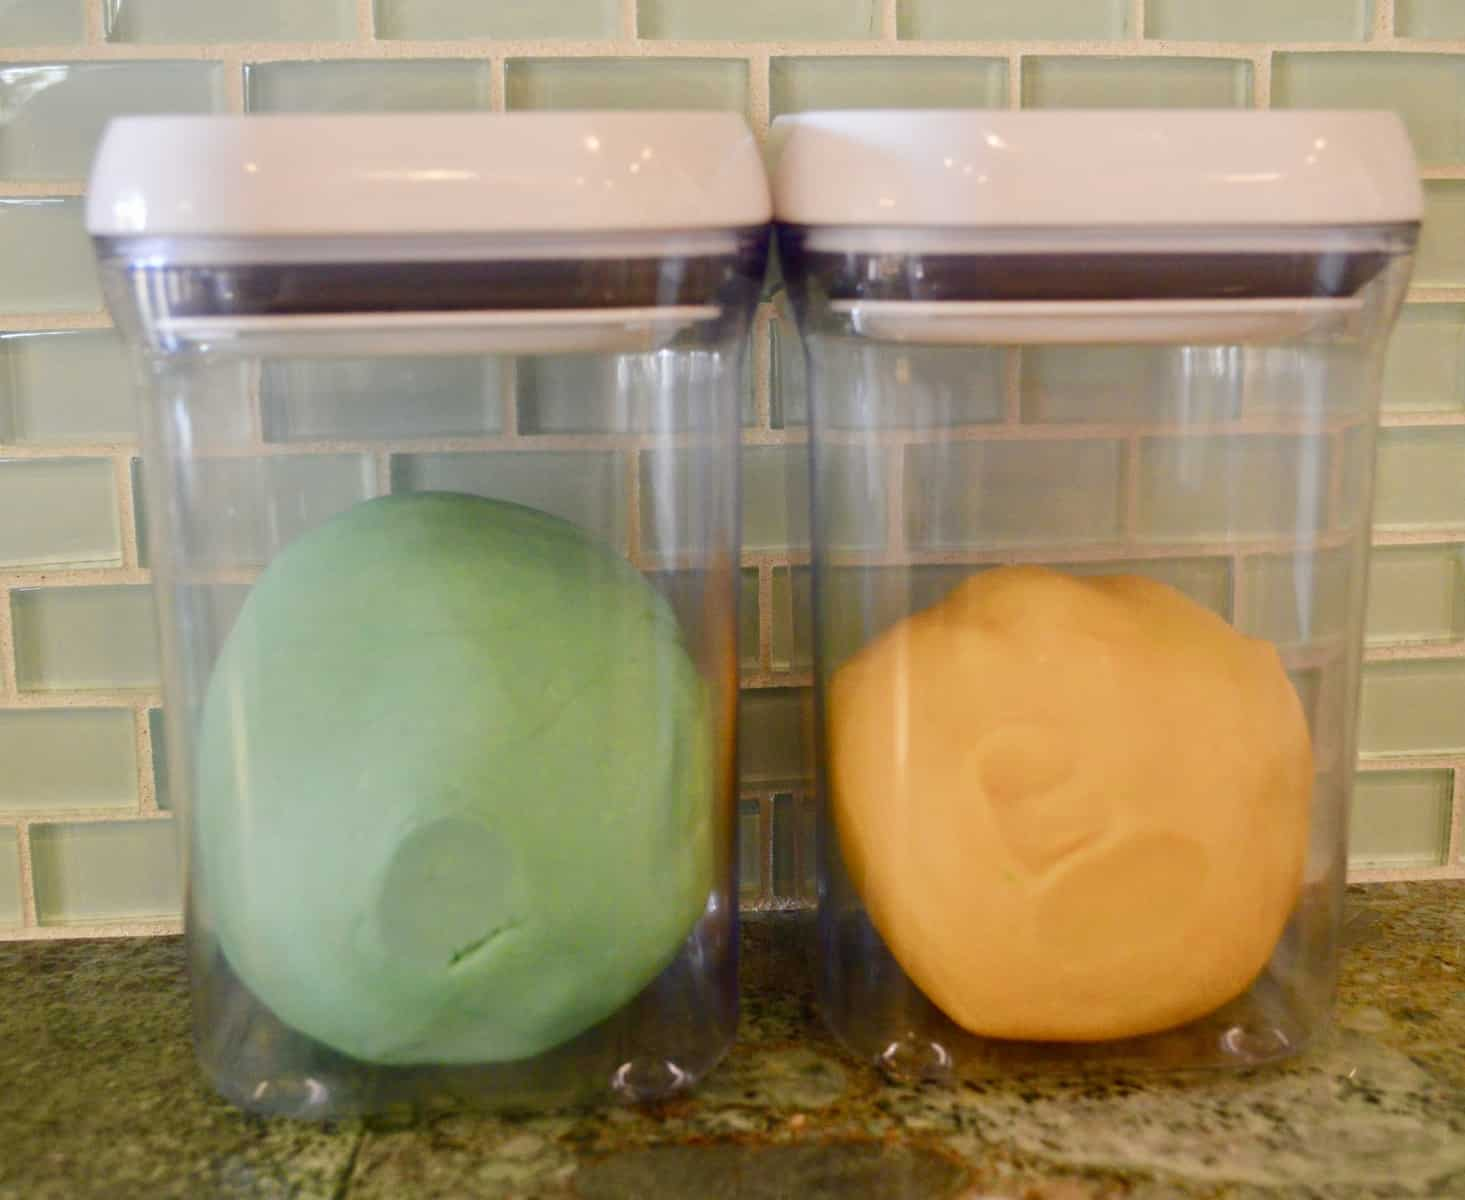 teal and orange play doh in a two airtight containers